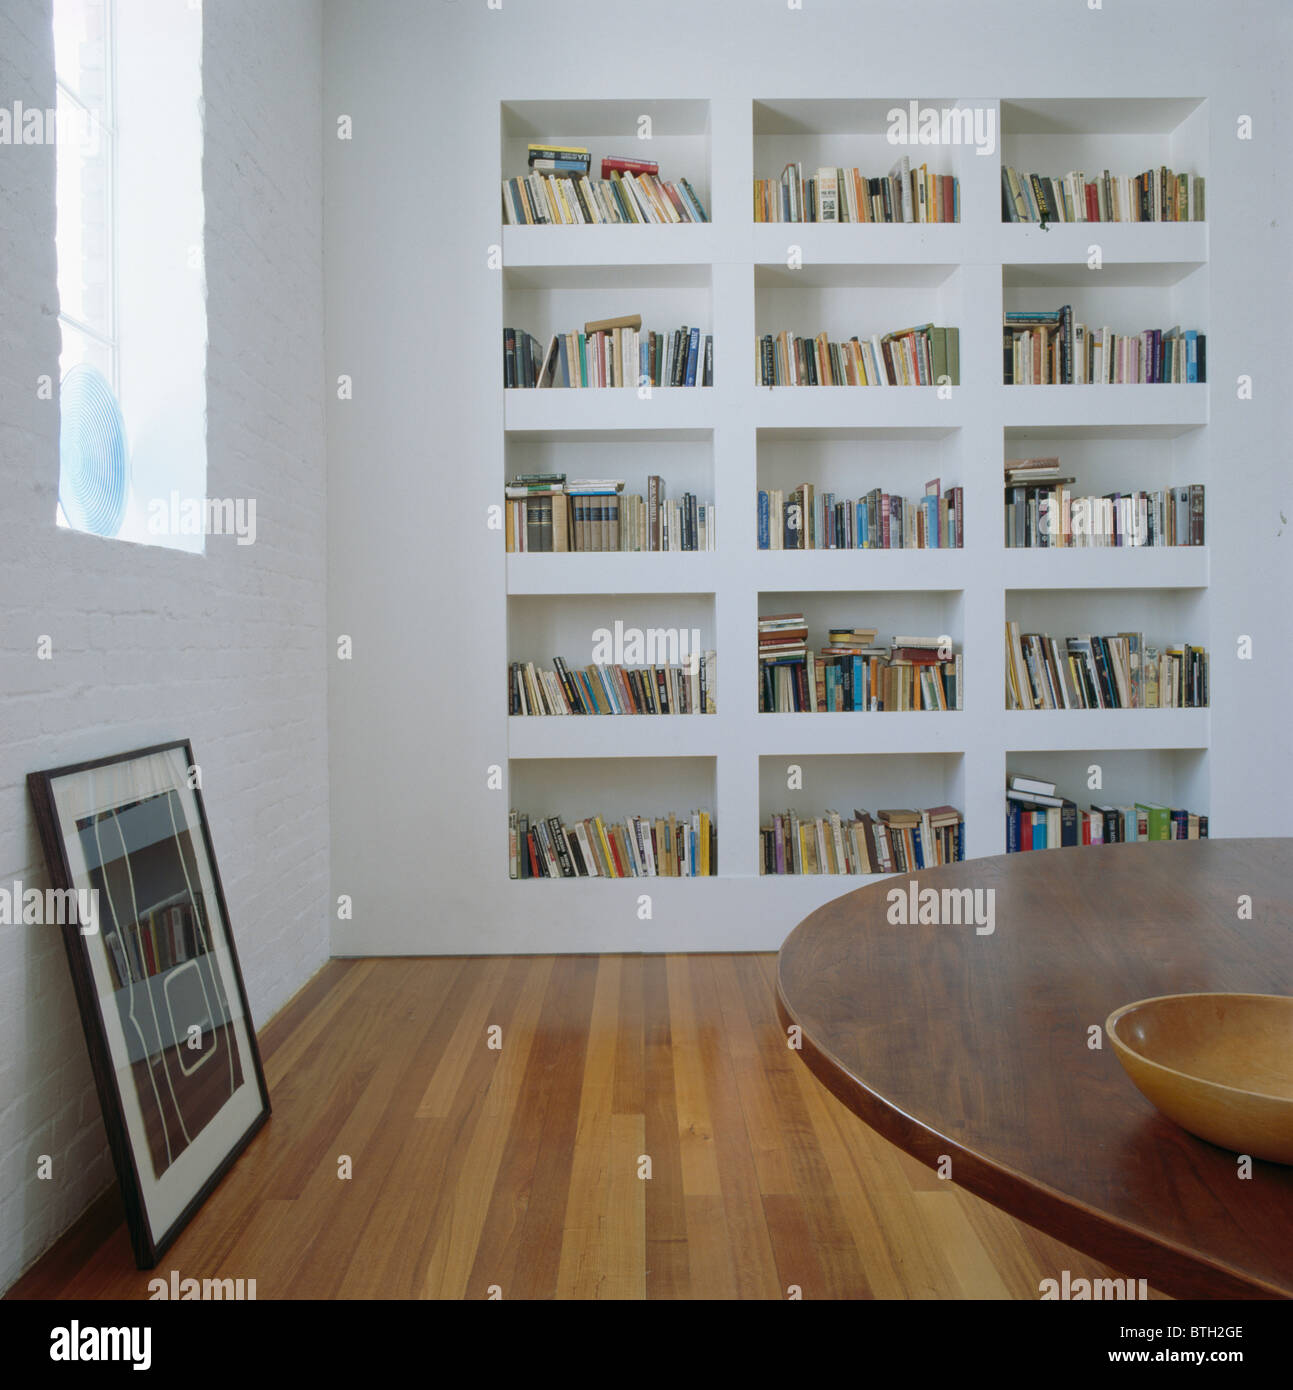 White recessed bookshelves in modern white dining room with picture propped up on wooden floor - Stock Image